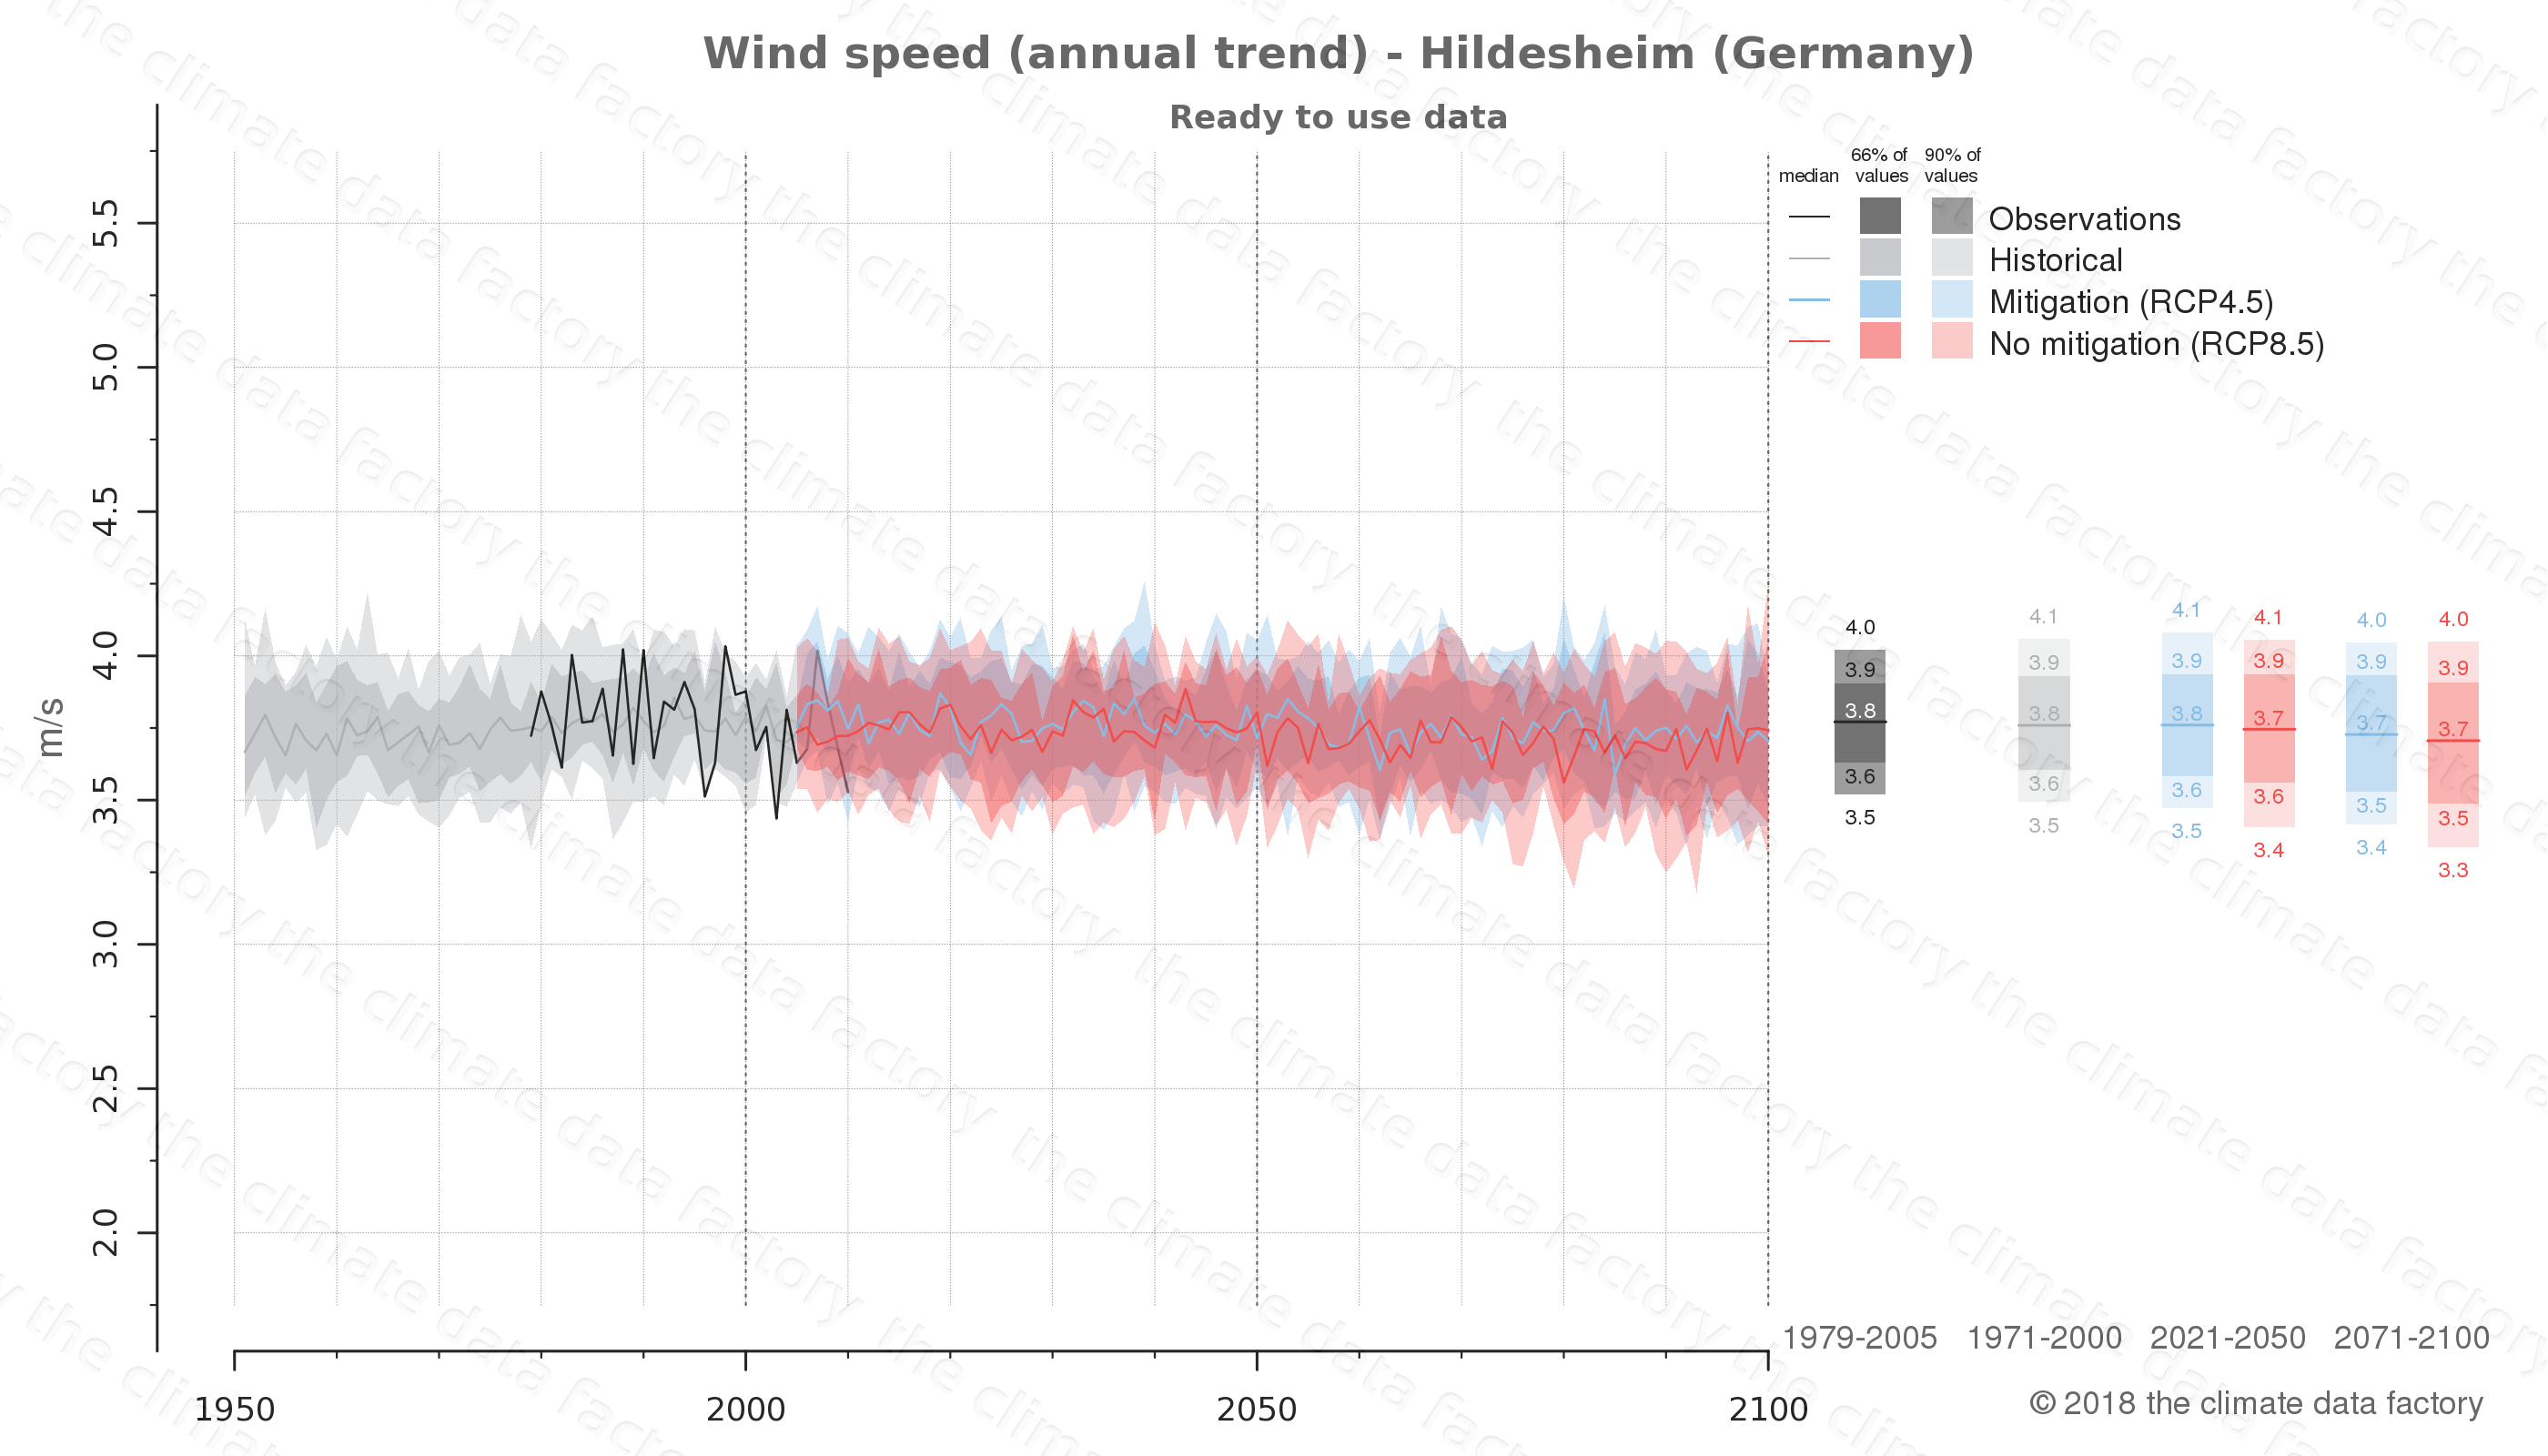 climate change data policy adaptation climate graph city data wind-speed hildesheim germany